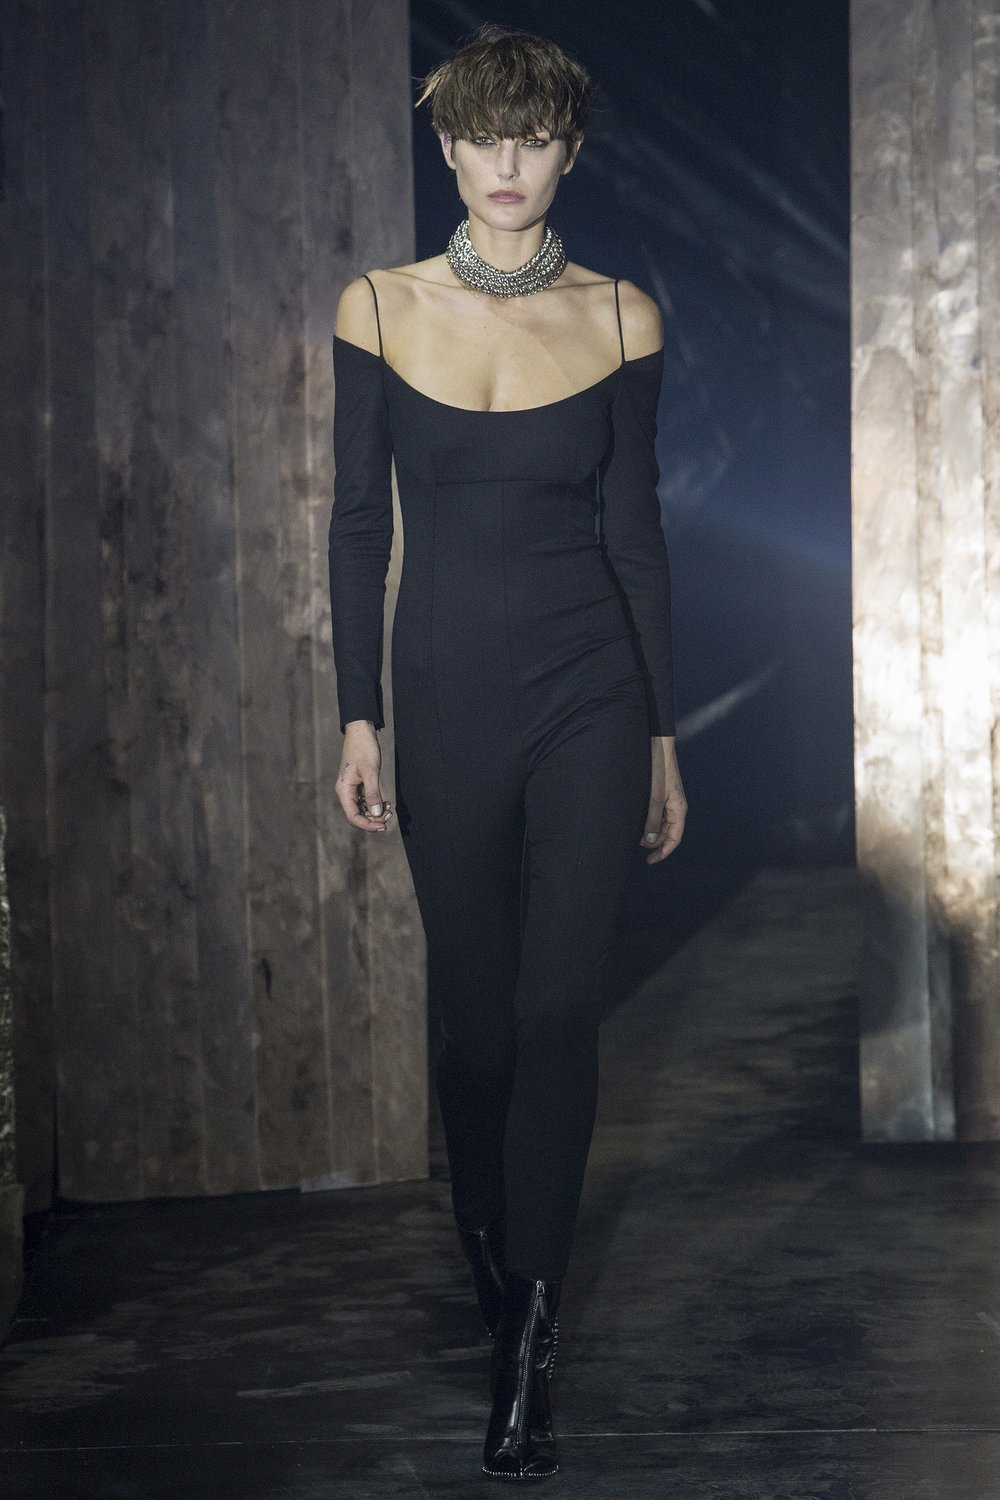 Alexander Wang - Vogue.com: Yannis Vlamos / indigital.tv